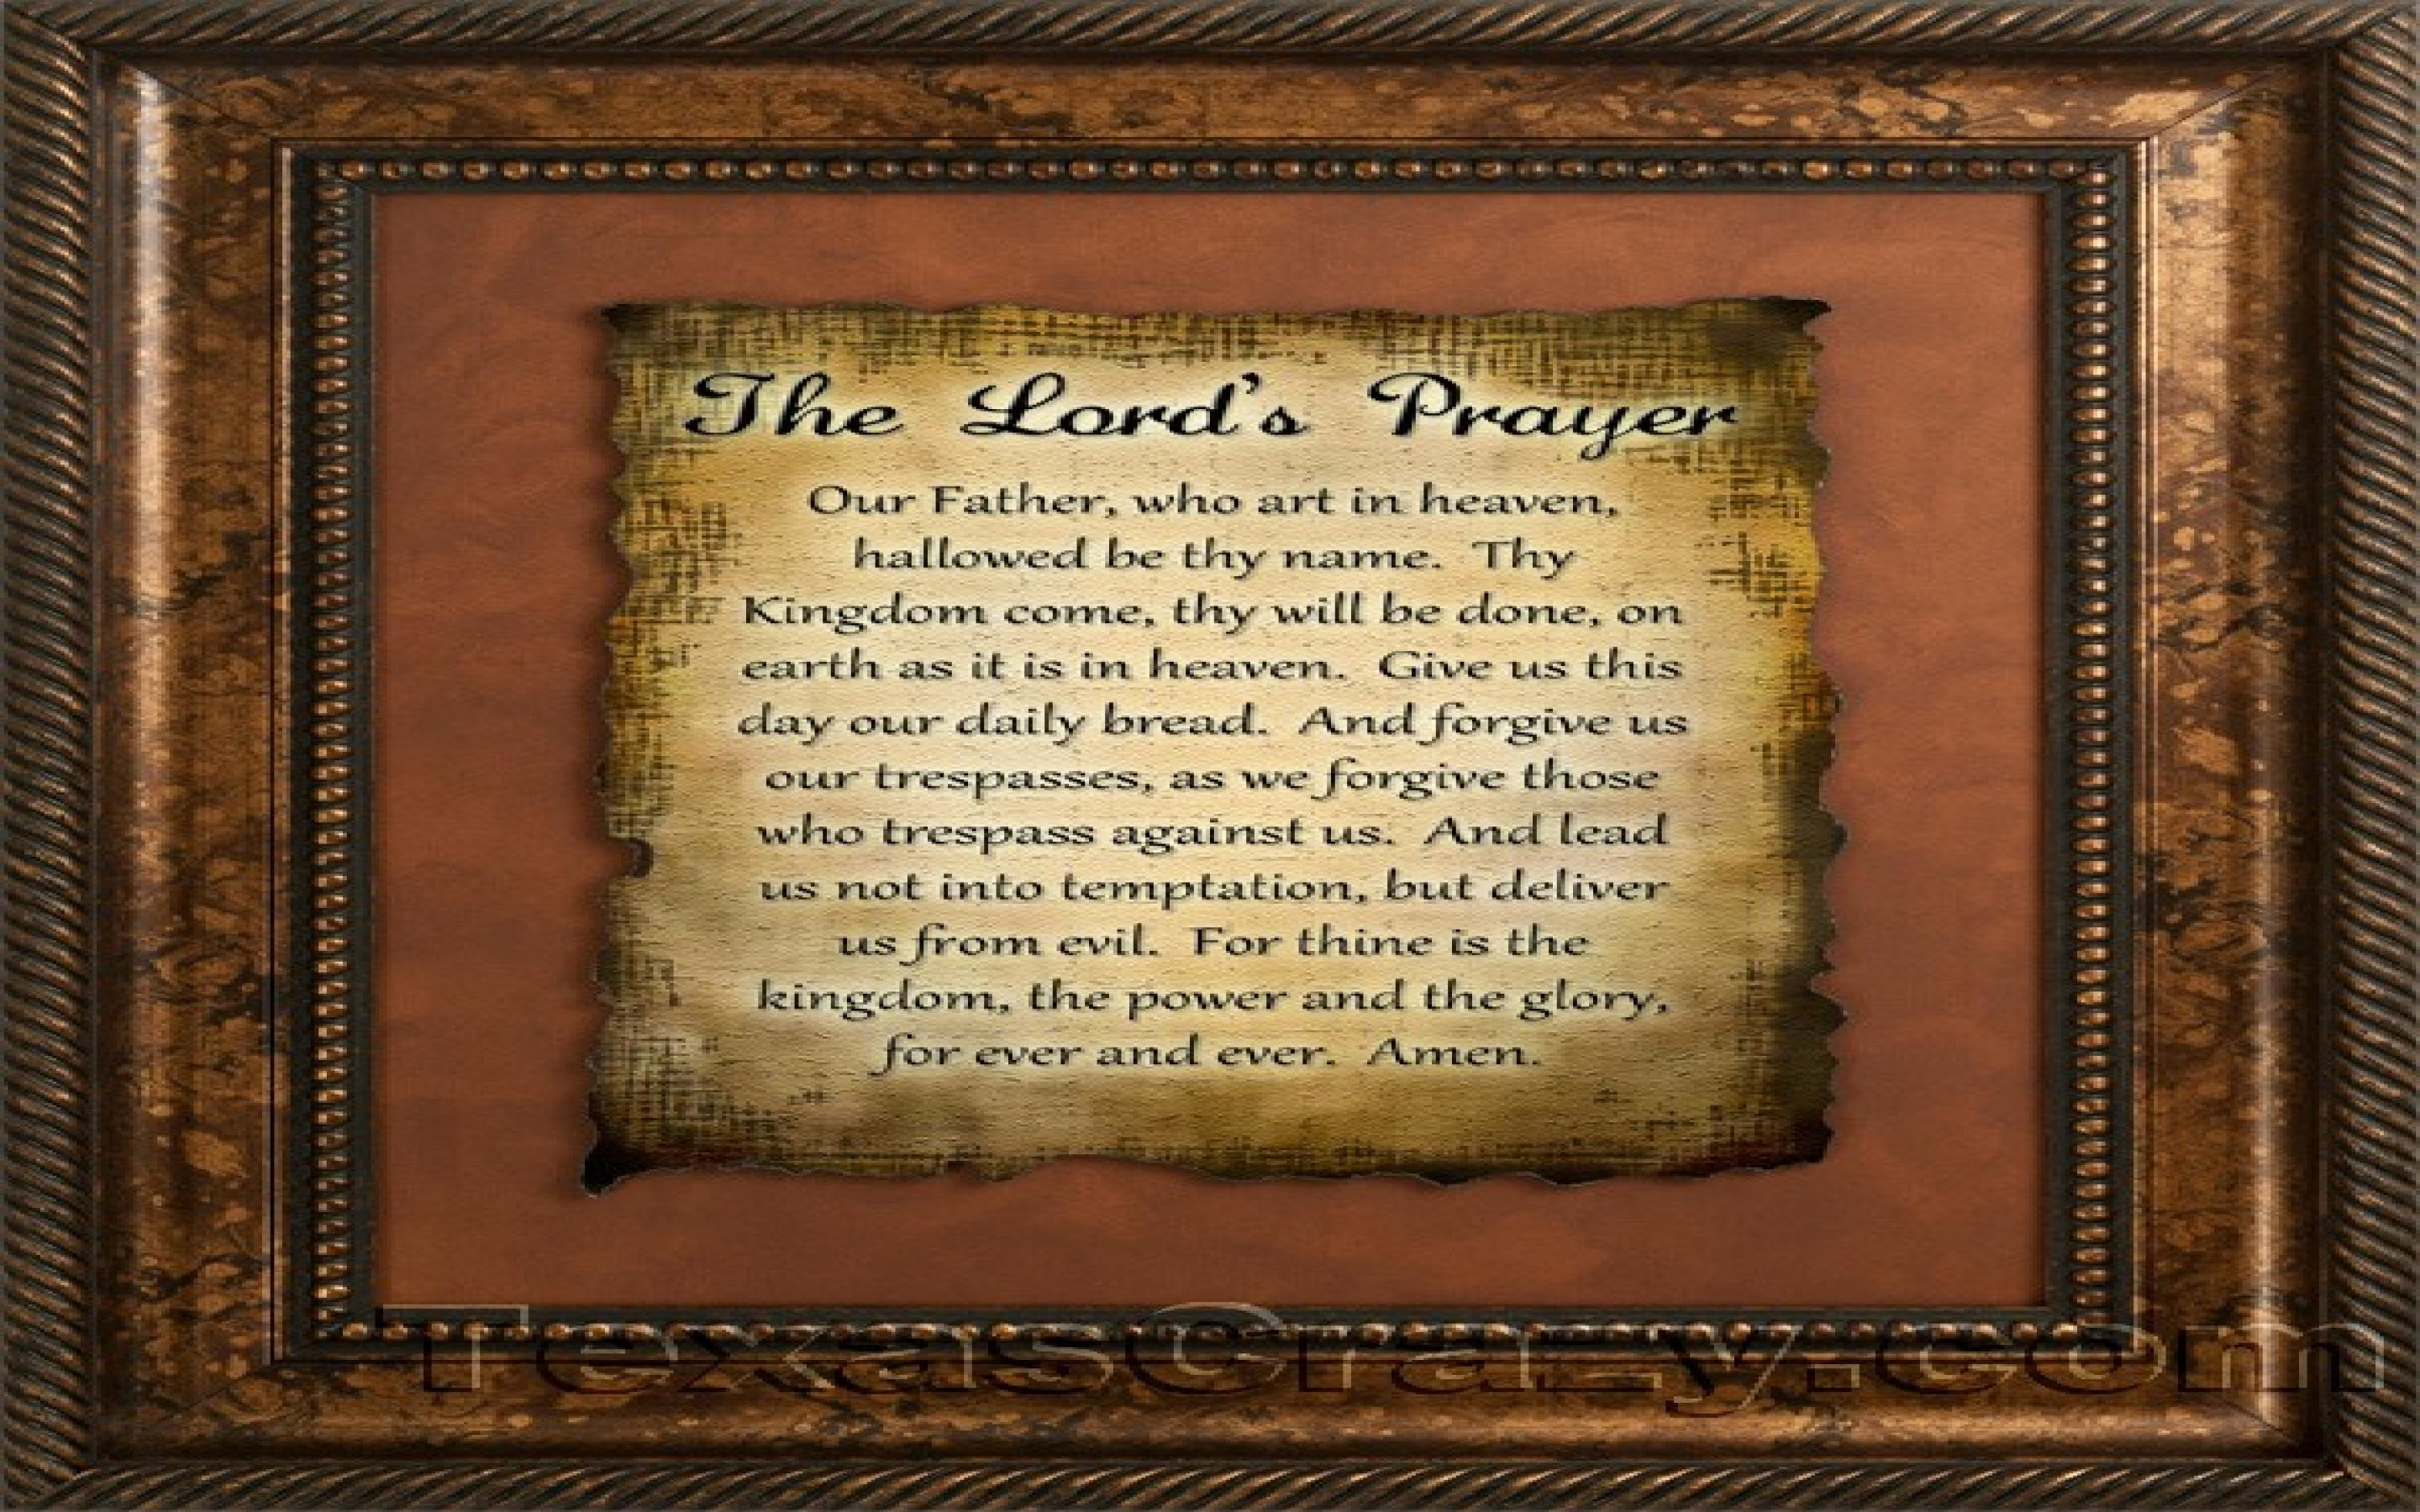 Lords Prayer Wallpaper Posted By Samantha Mercado